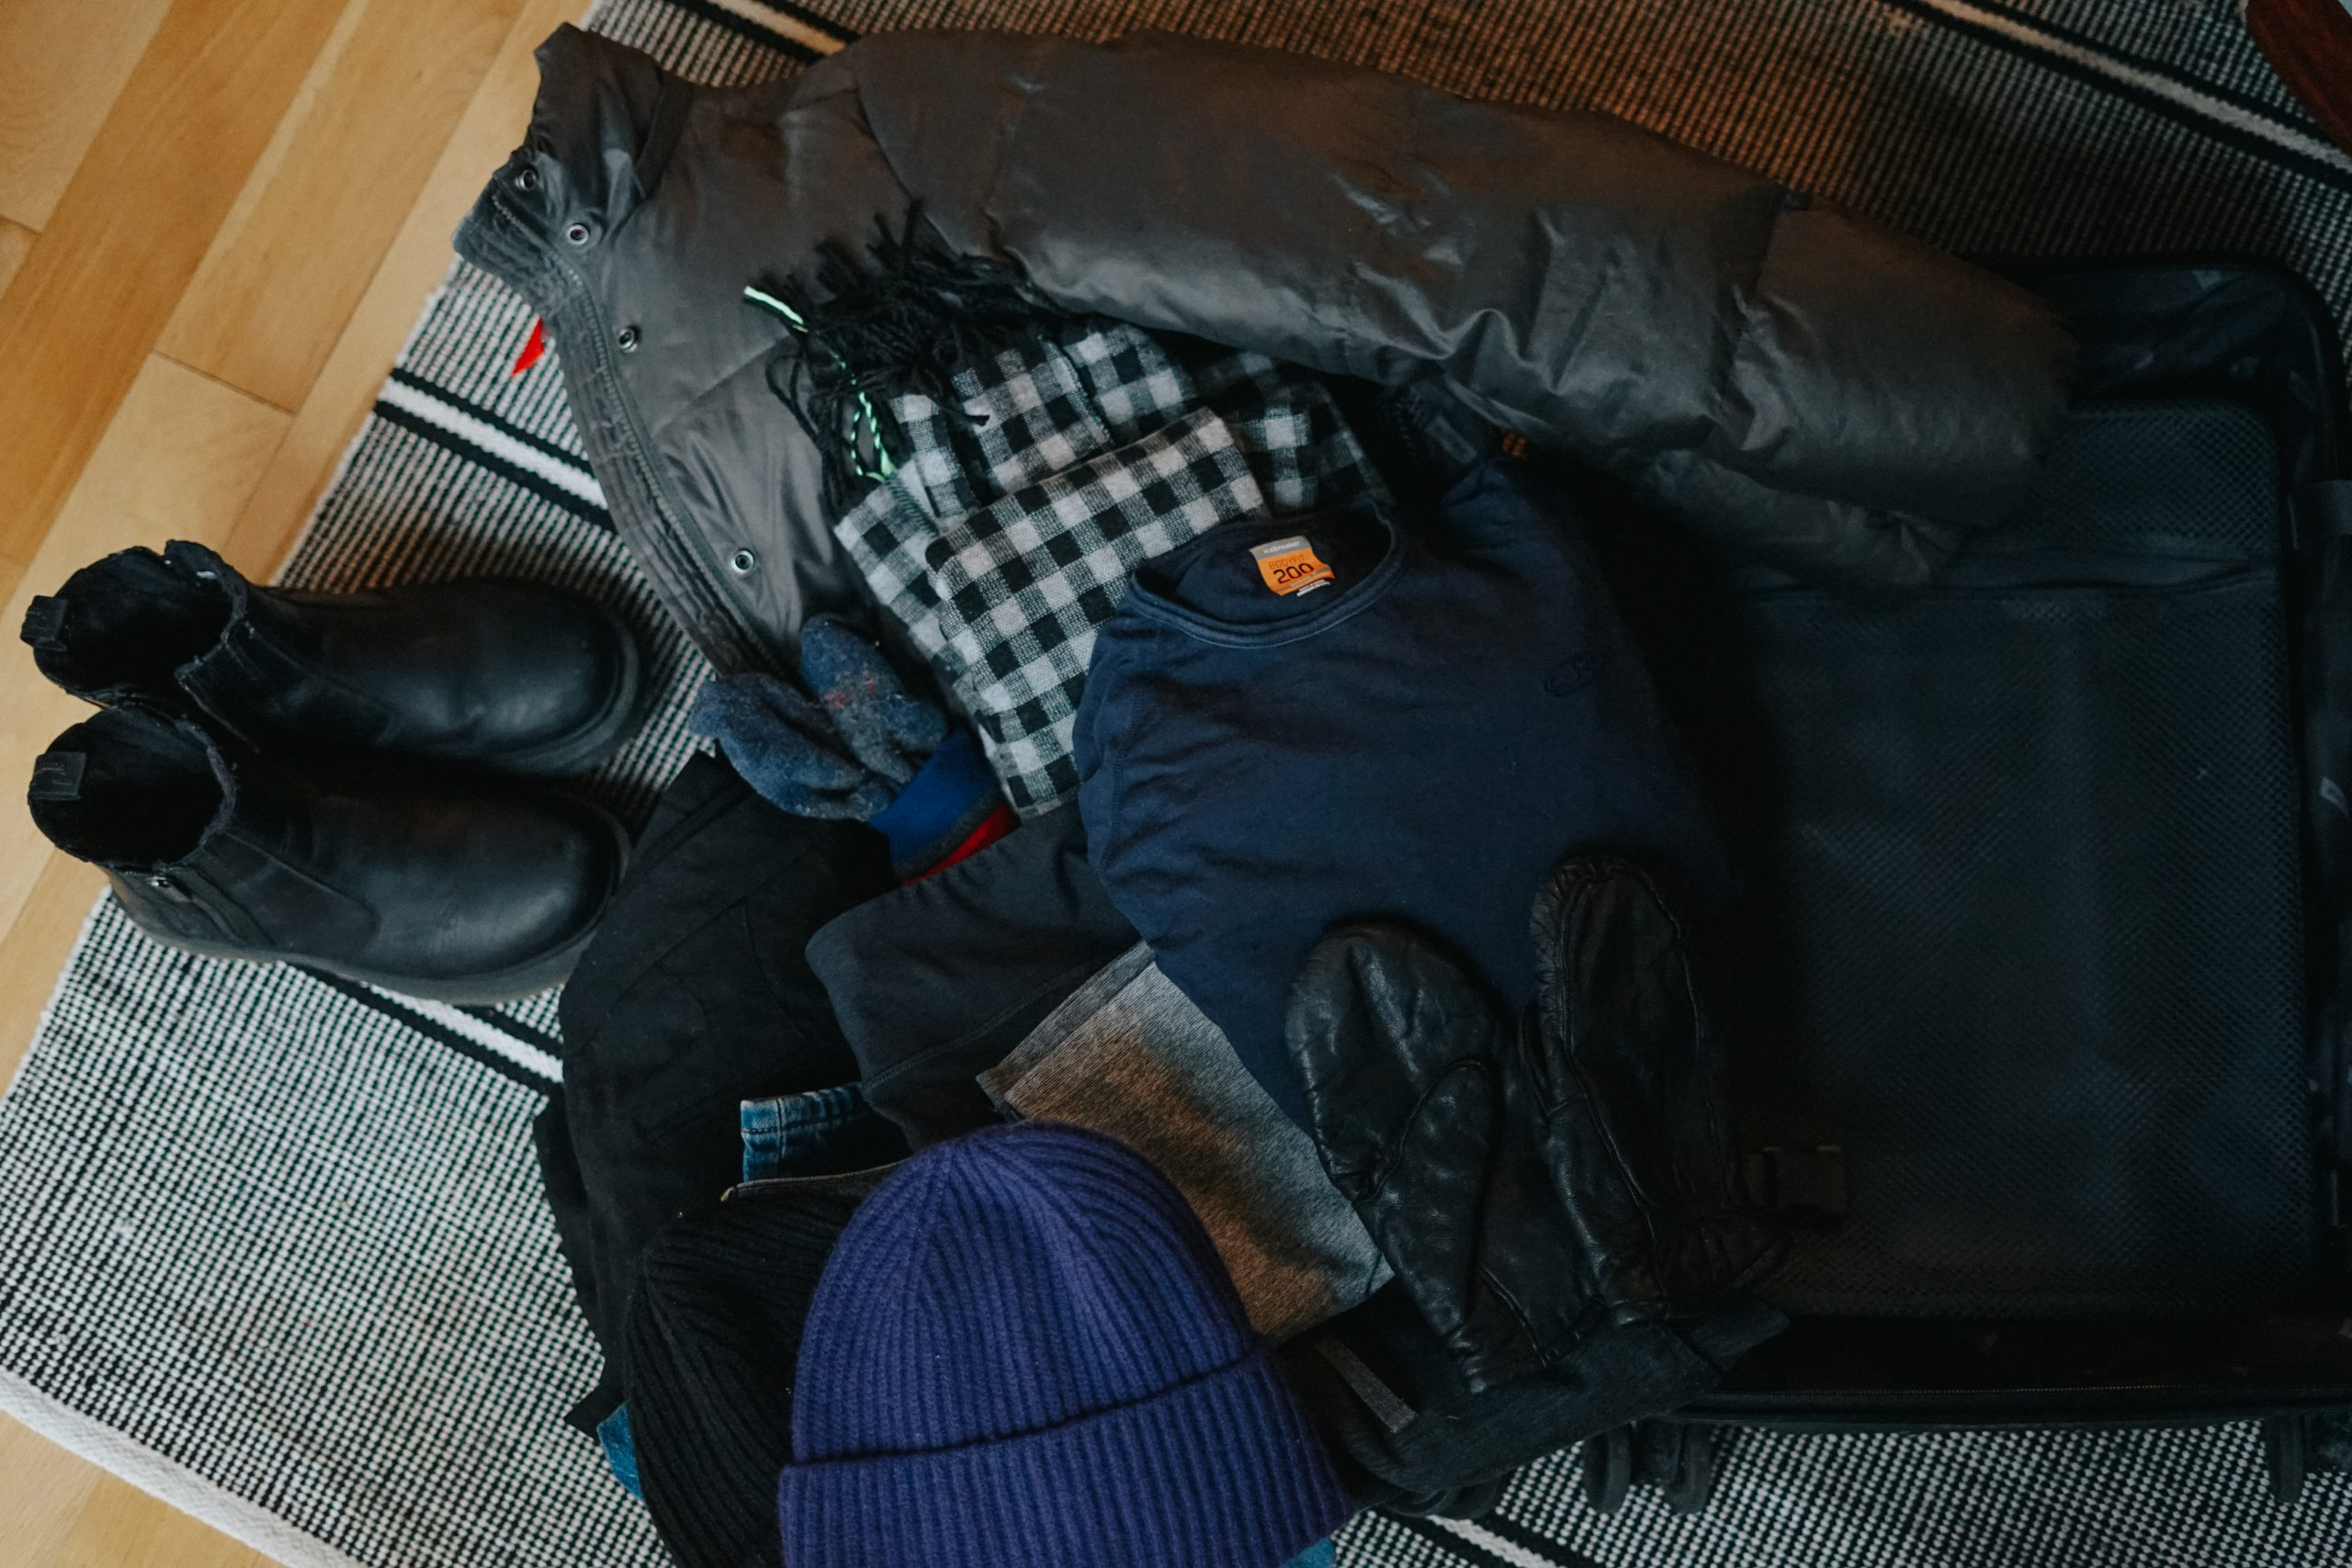 packing for winter